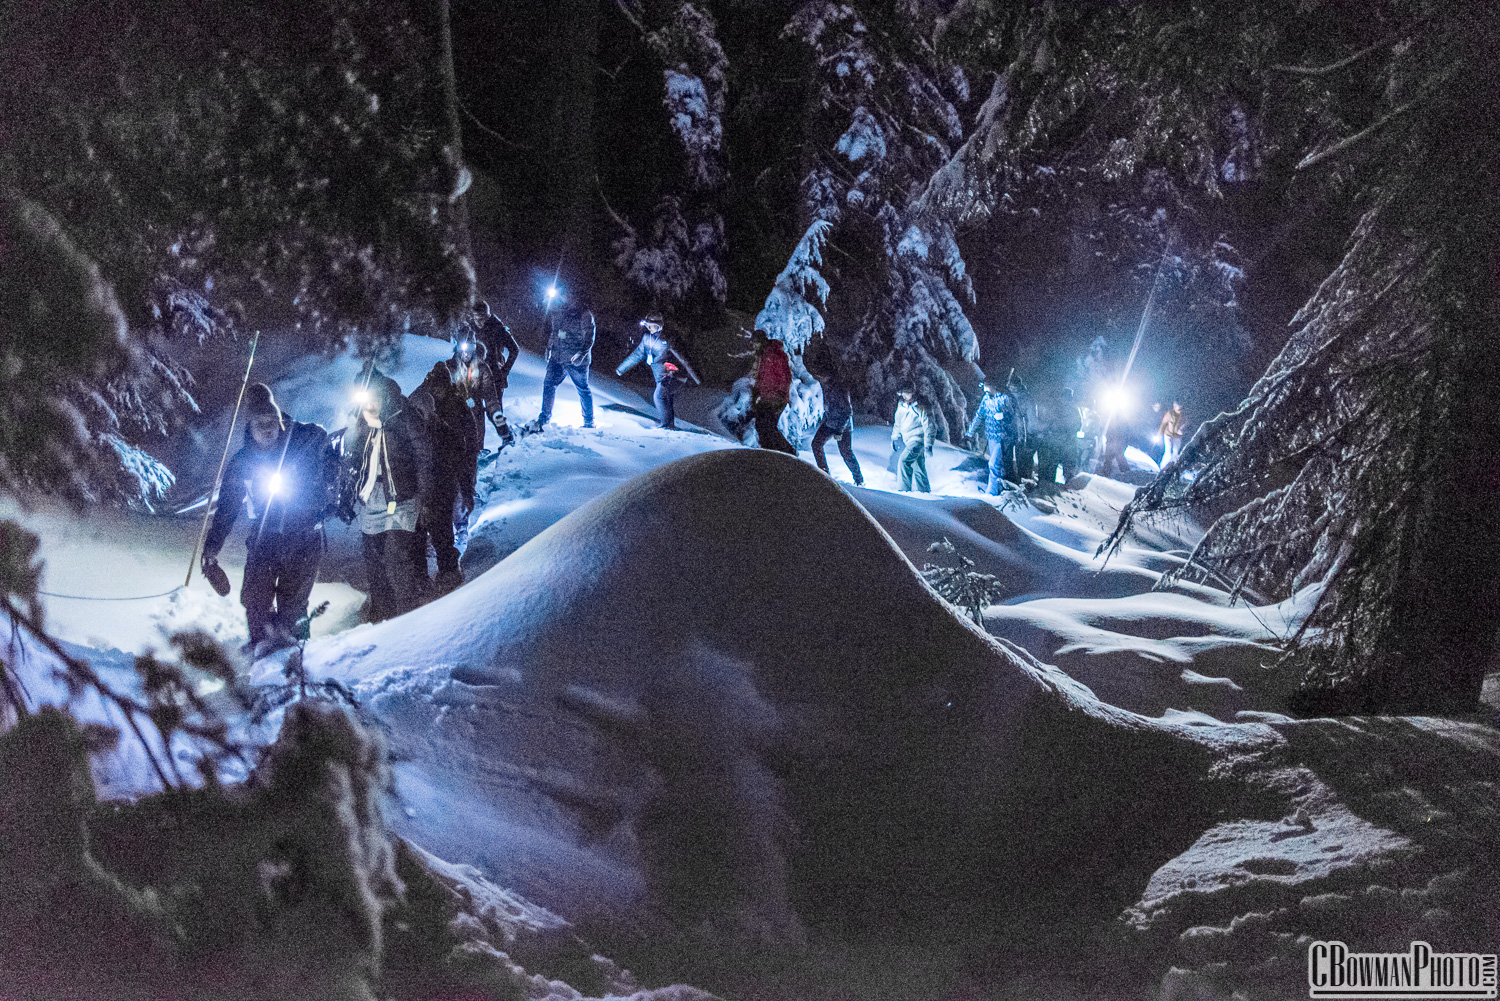 Moonlight Snowshoe 2018 - Highlights from the 12th Annual Moonlight Snowshoe